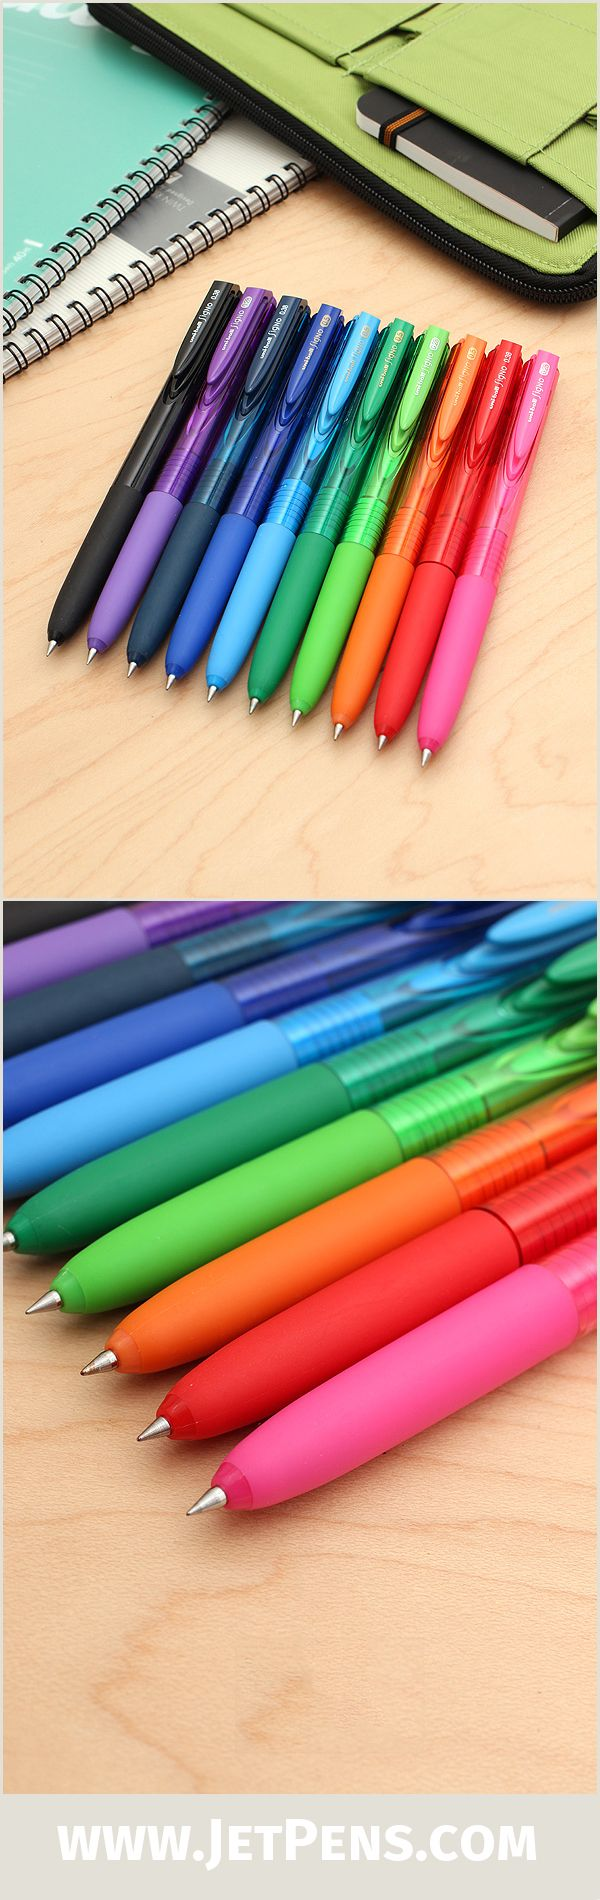 The popular Signo RT1 UMN-155 Gel Pen is now available in a wider 0.5 mm size that provides smooth, consistent writing!